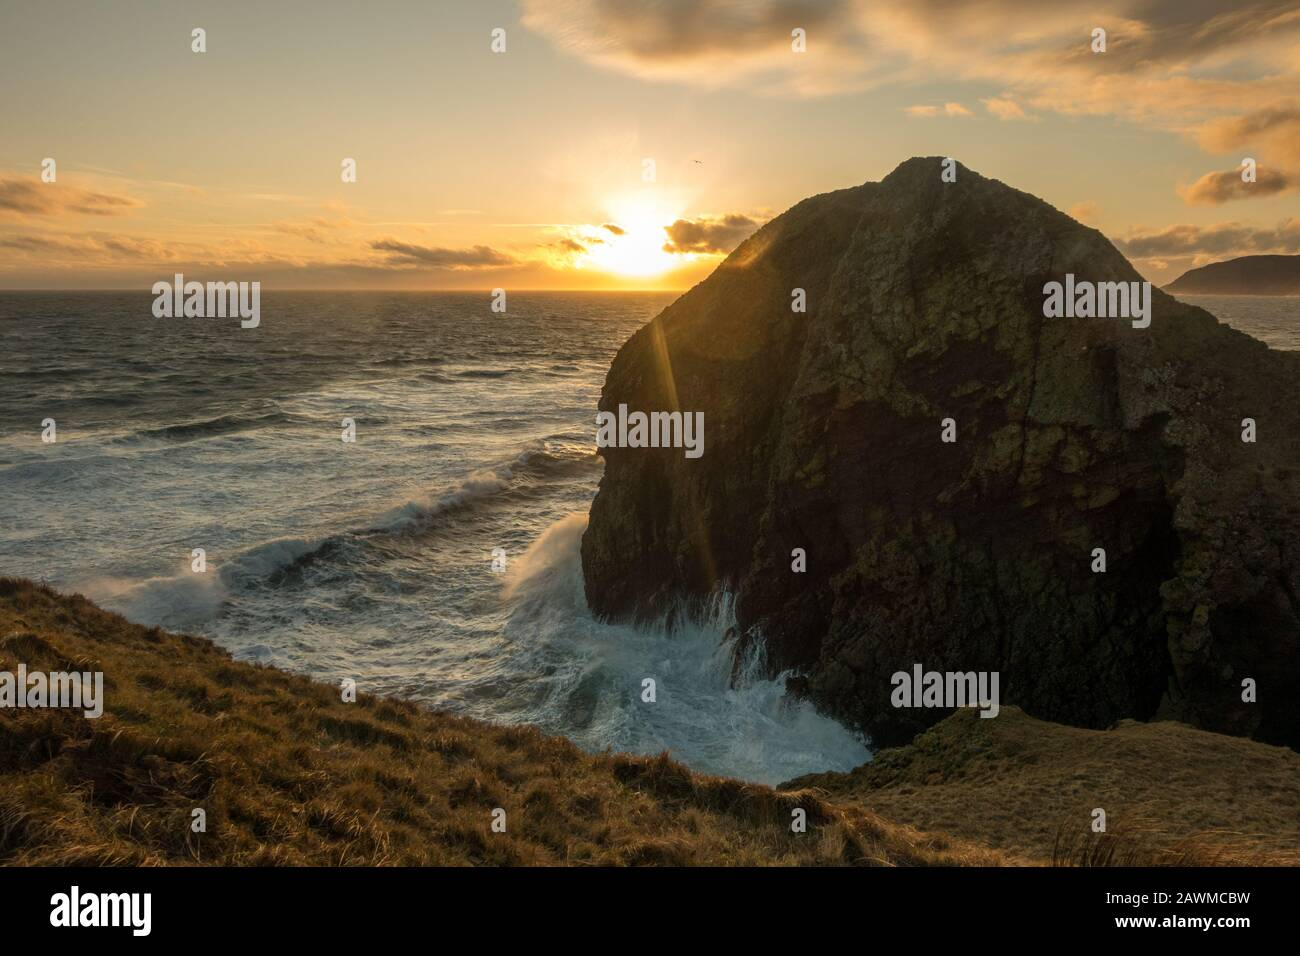 Roaring Cove at Dunaverty Castle and Dunaverty Rock with views behind of the Mull of Kintyre at sunset, Scotland Stock Photo